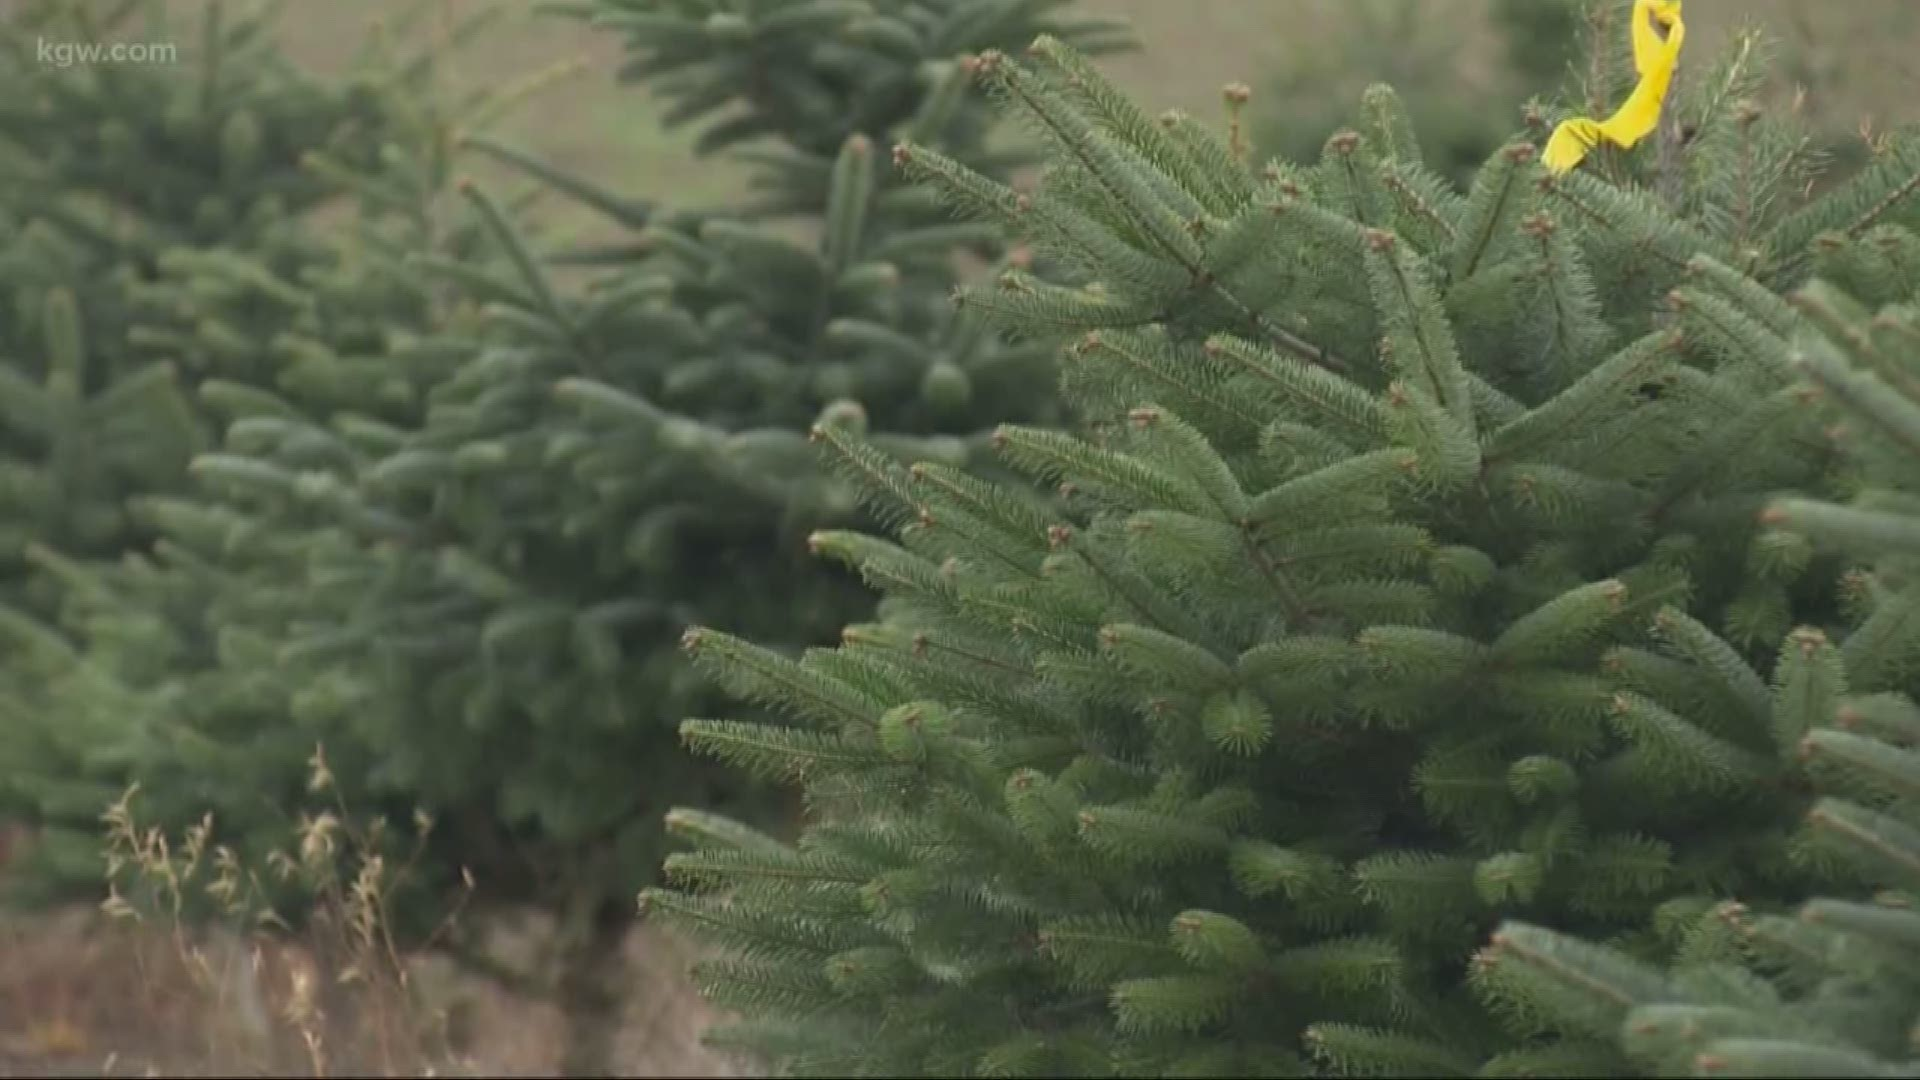 Washington State Cut Christmas Tree Shortage 2020 Christmas tree shortage in Oregon means more expensive trees | kgw.com